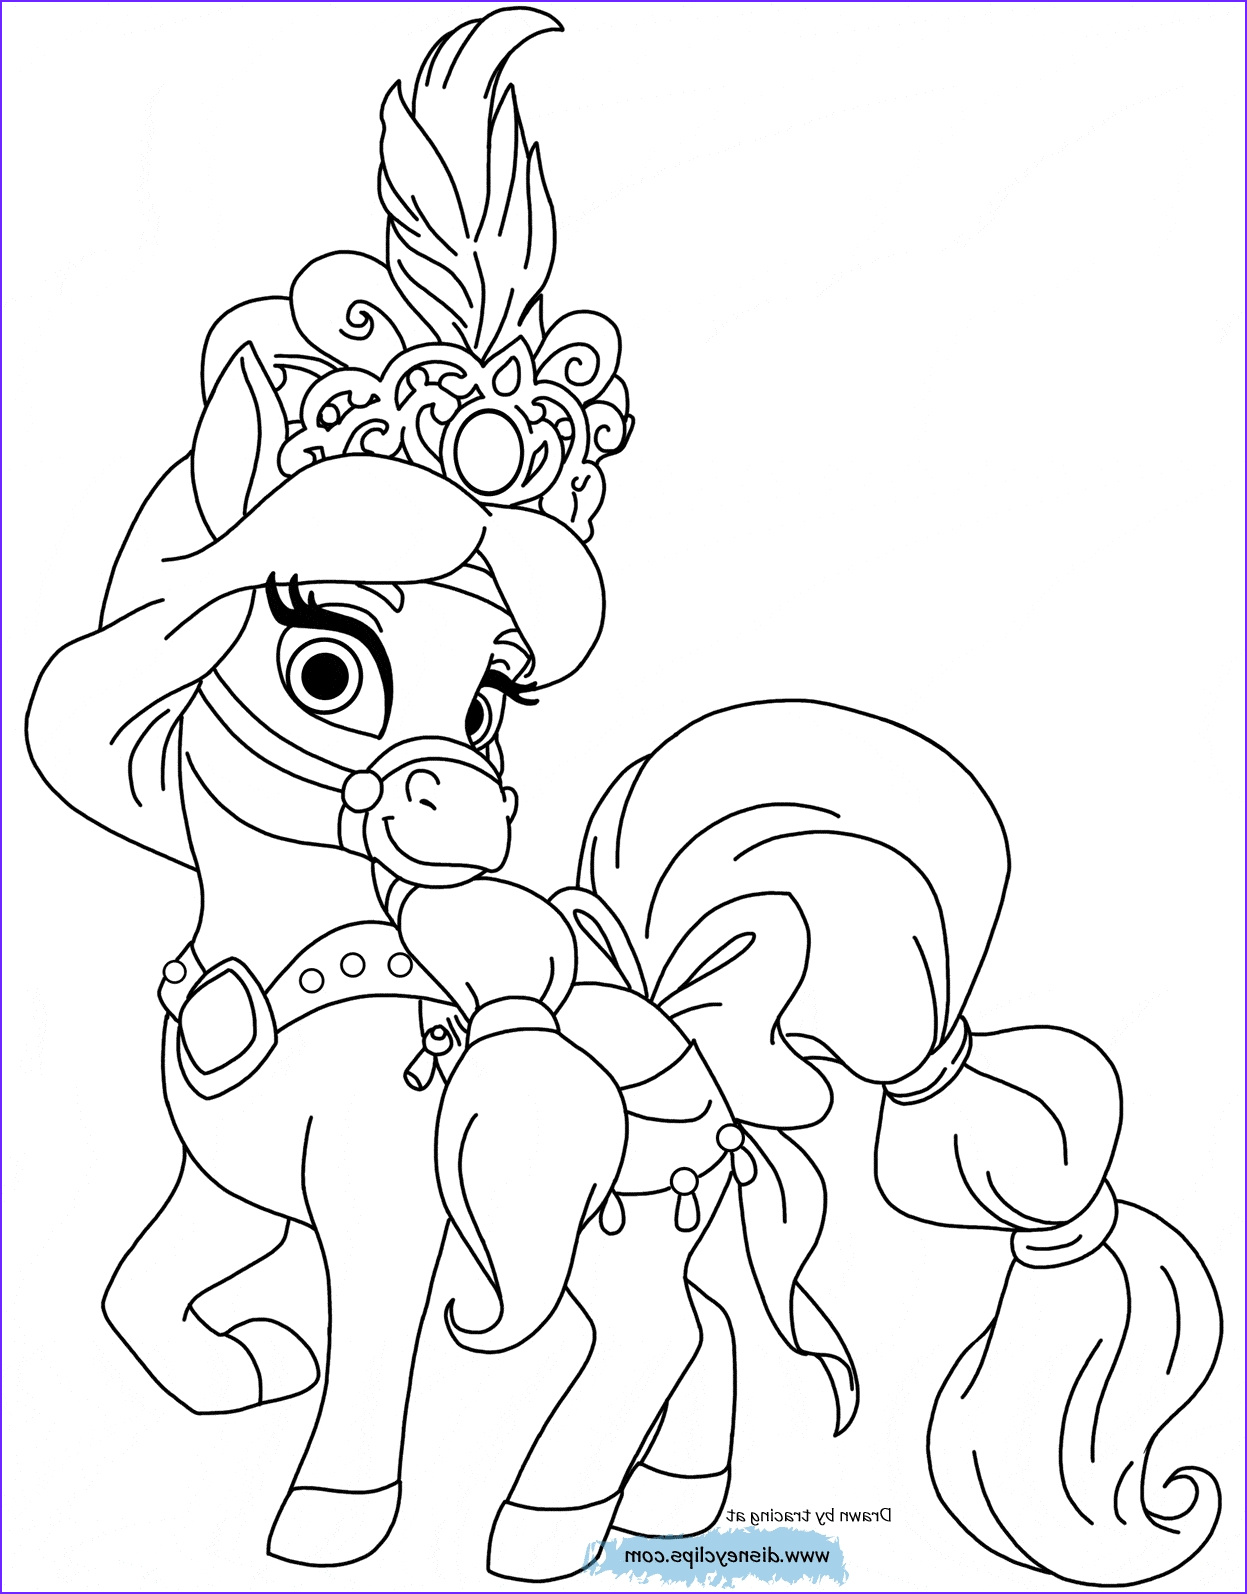 whisker haven coloring pages